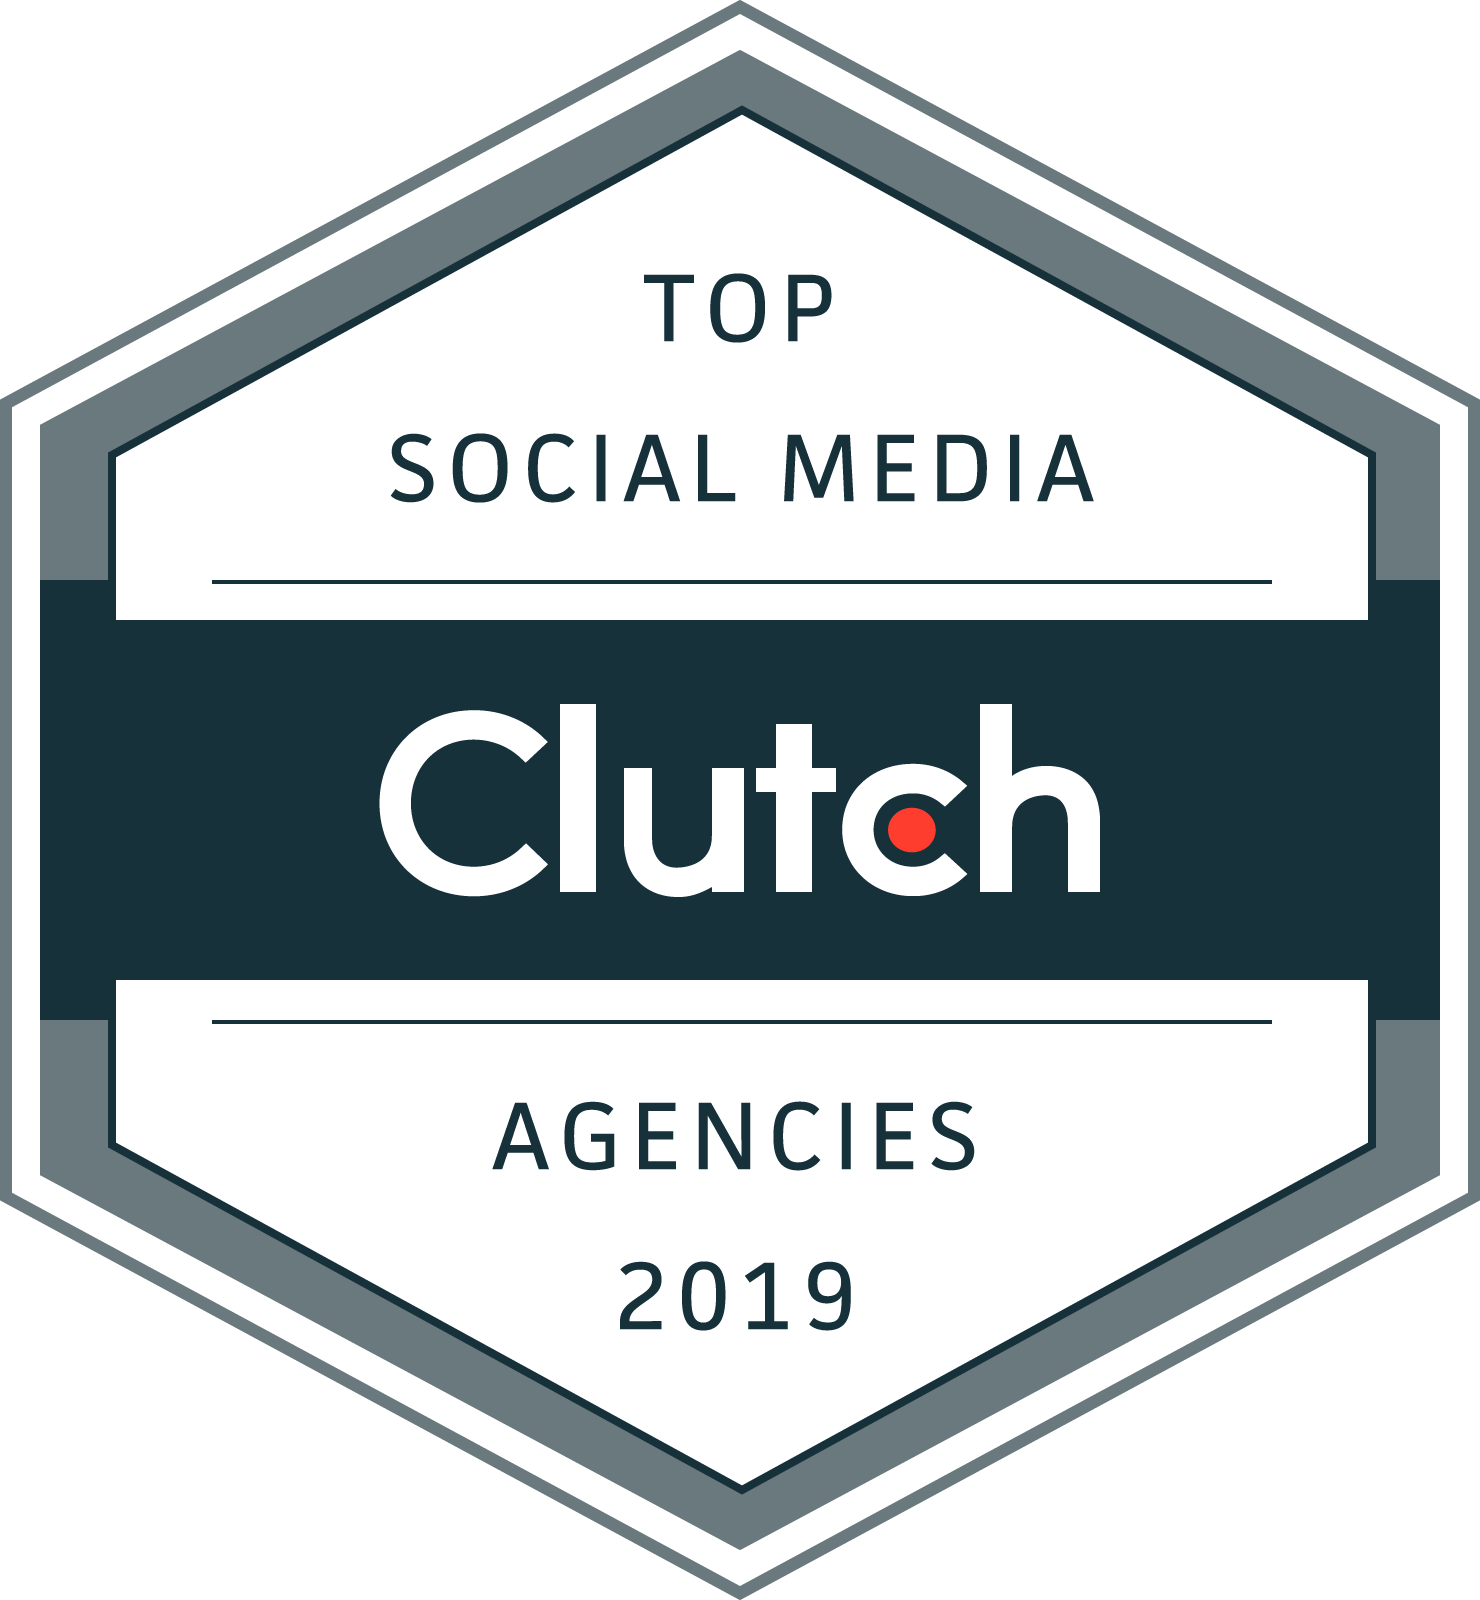 Top Social Media Agency Award 2019